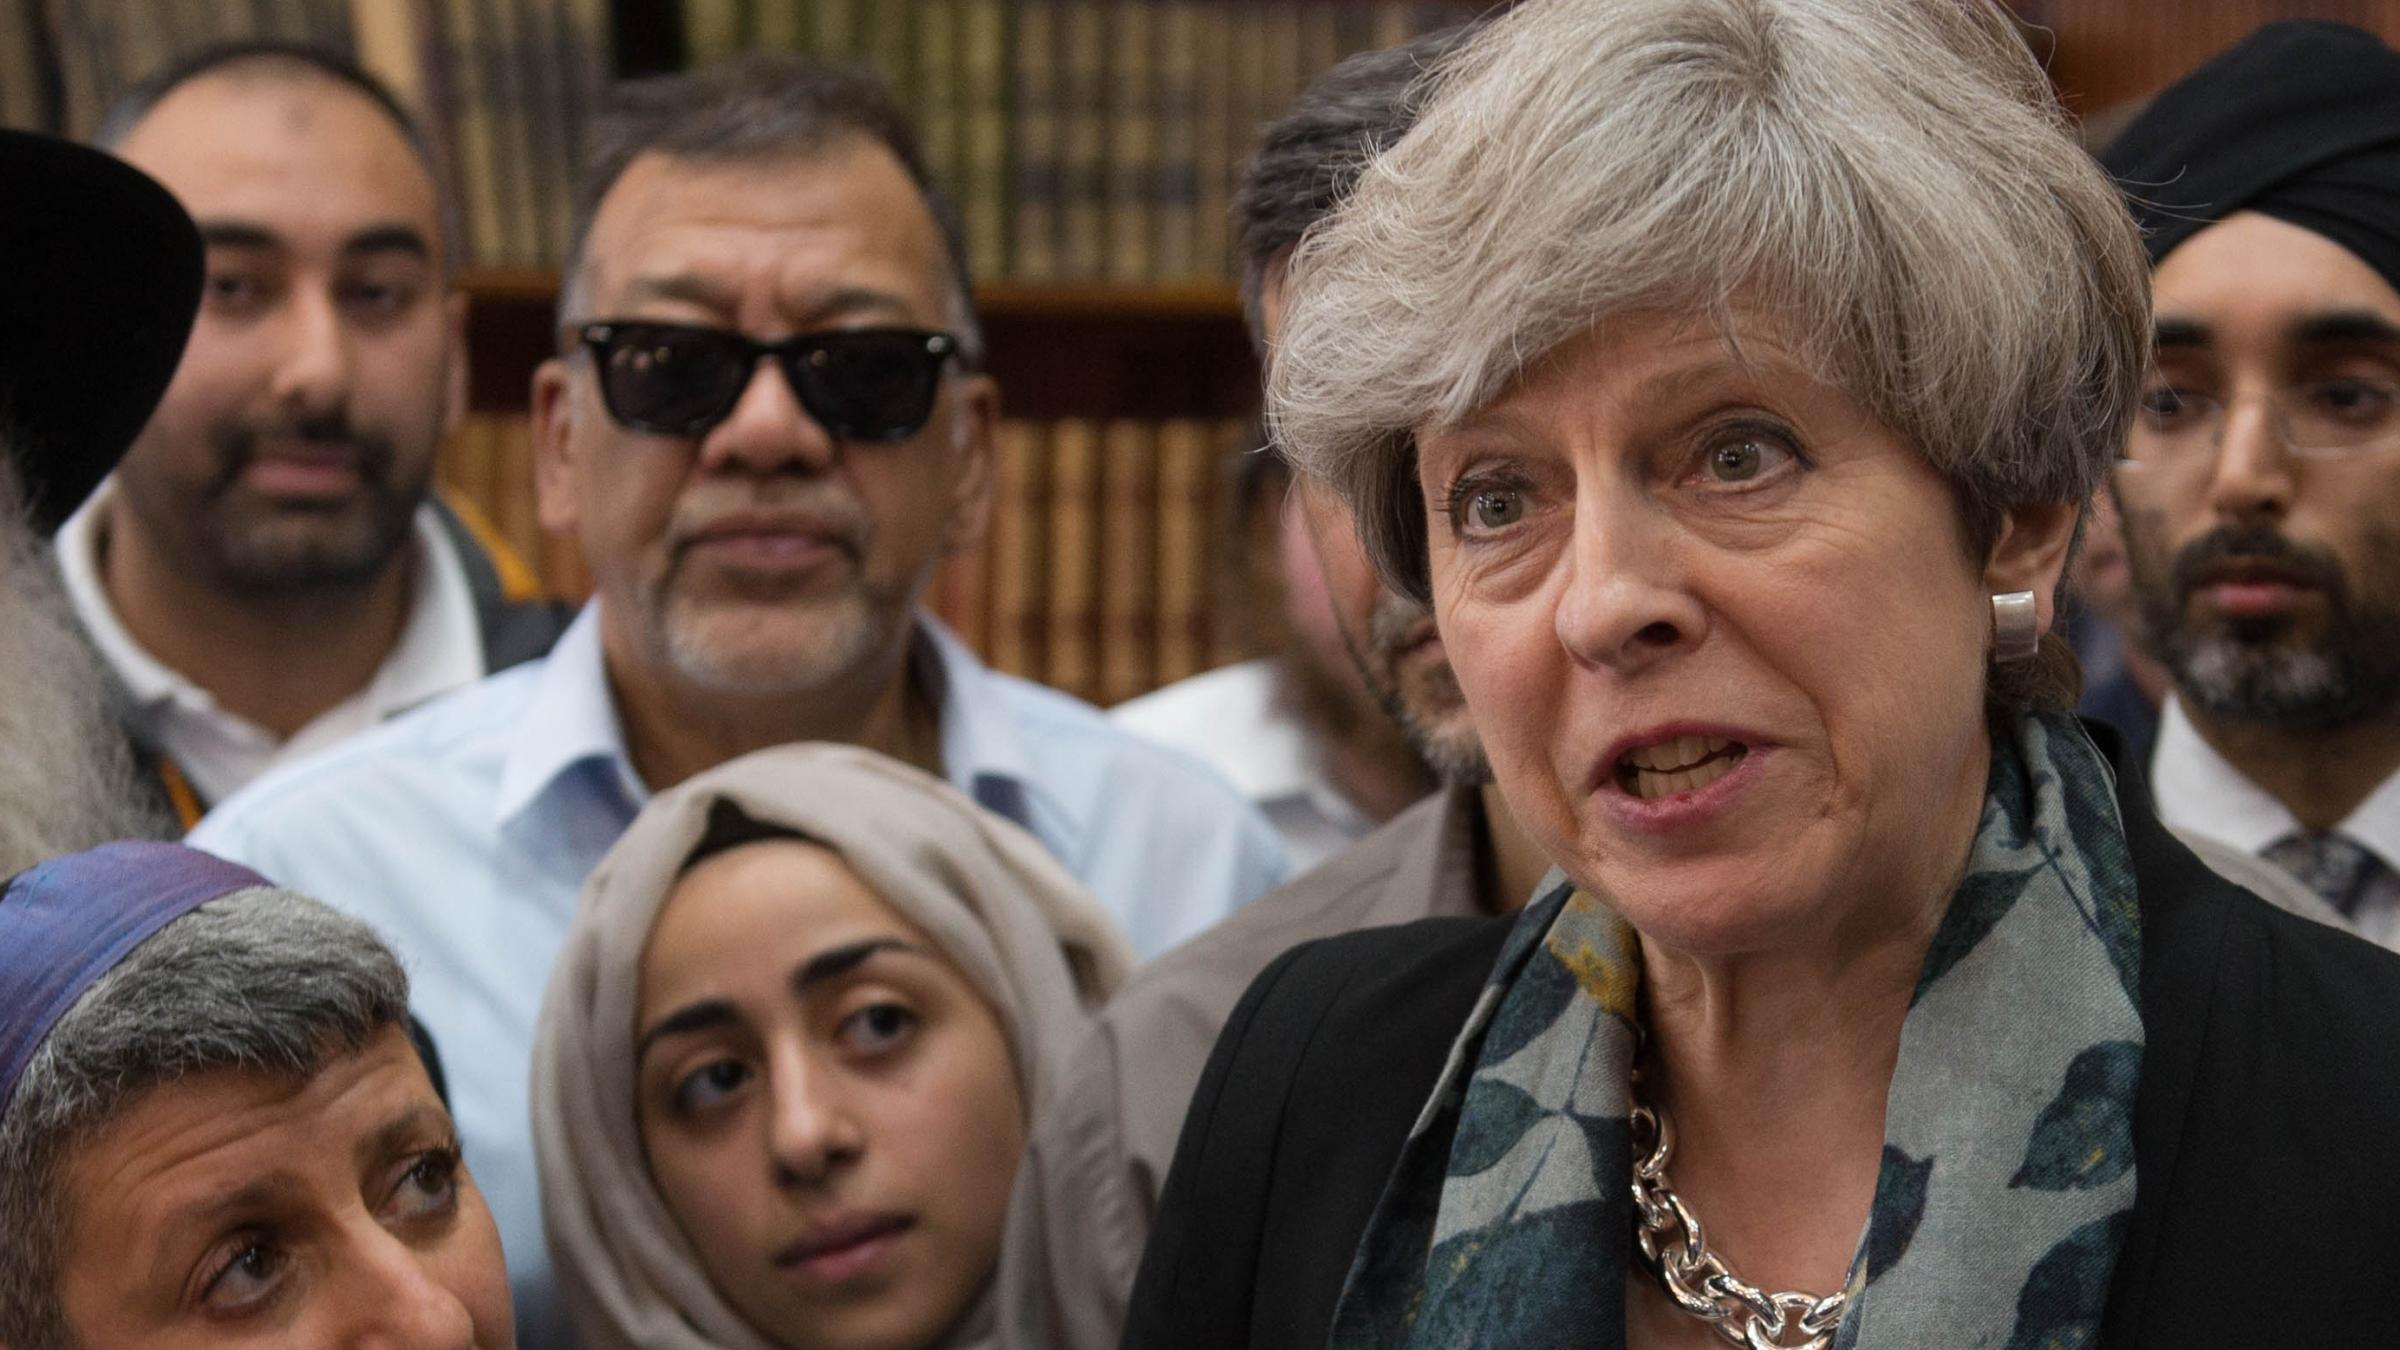 Theresa May heckled after visiting Finsbury Park Mosque